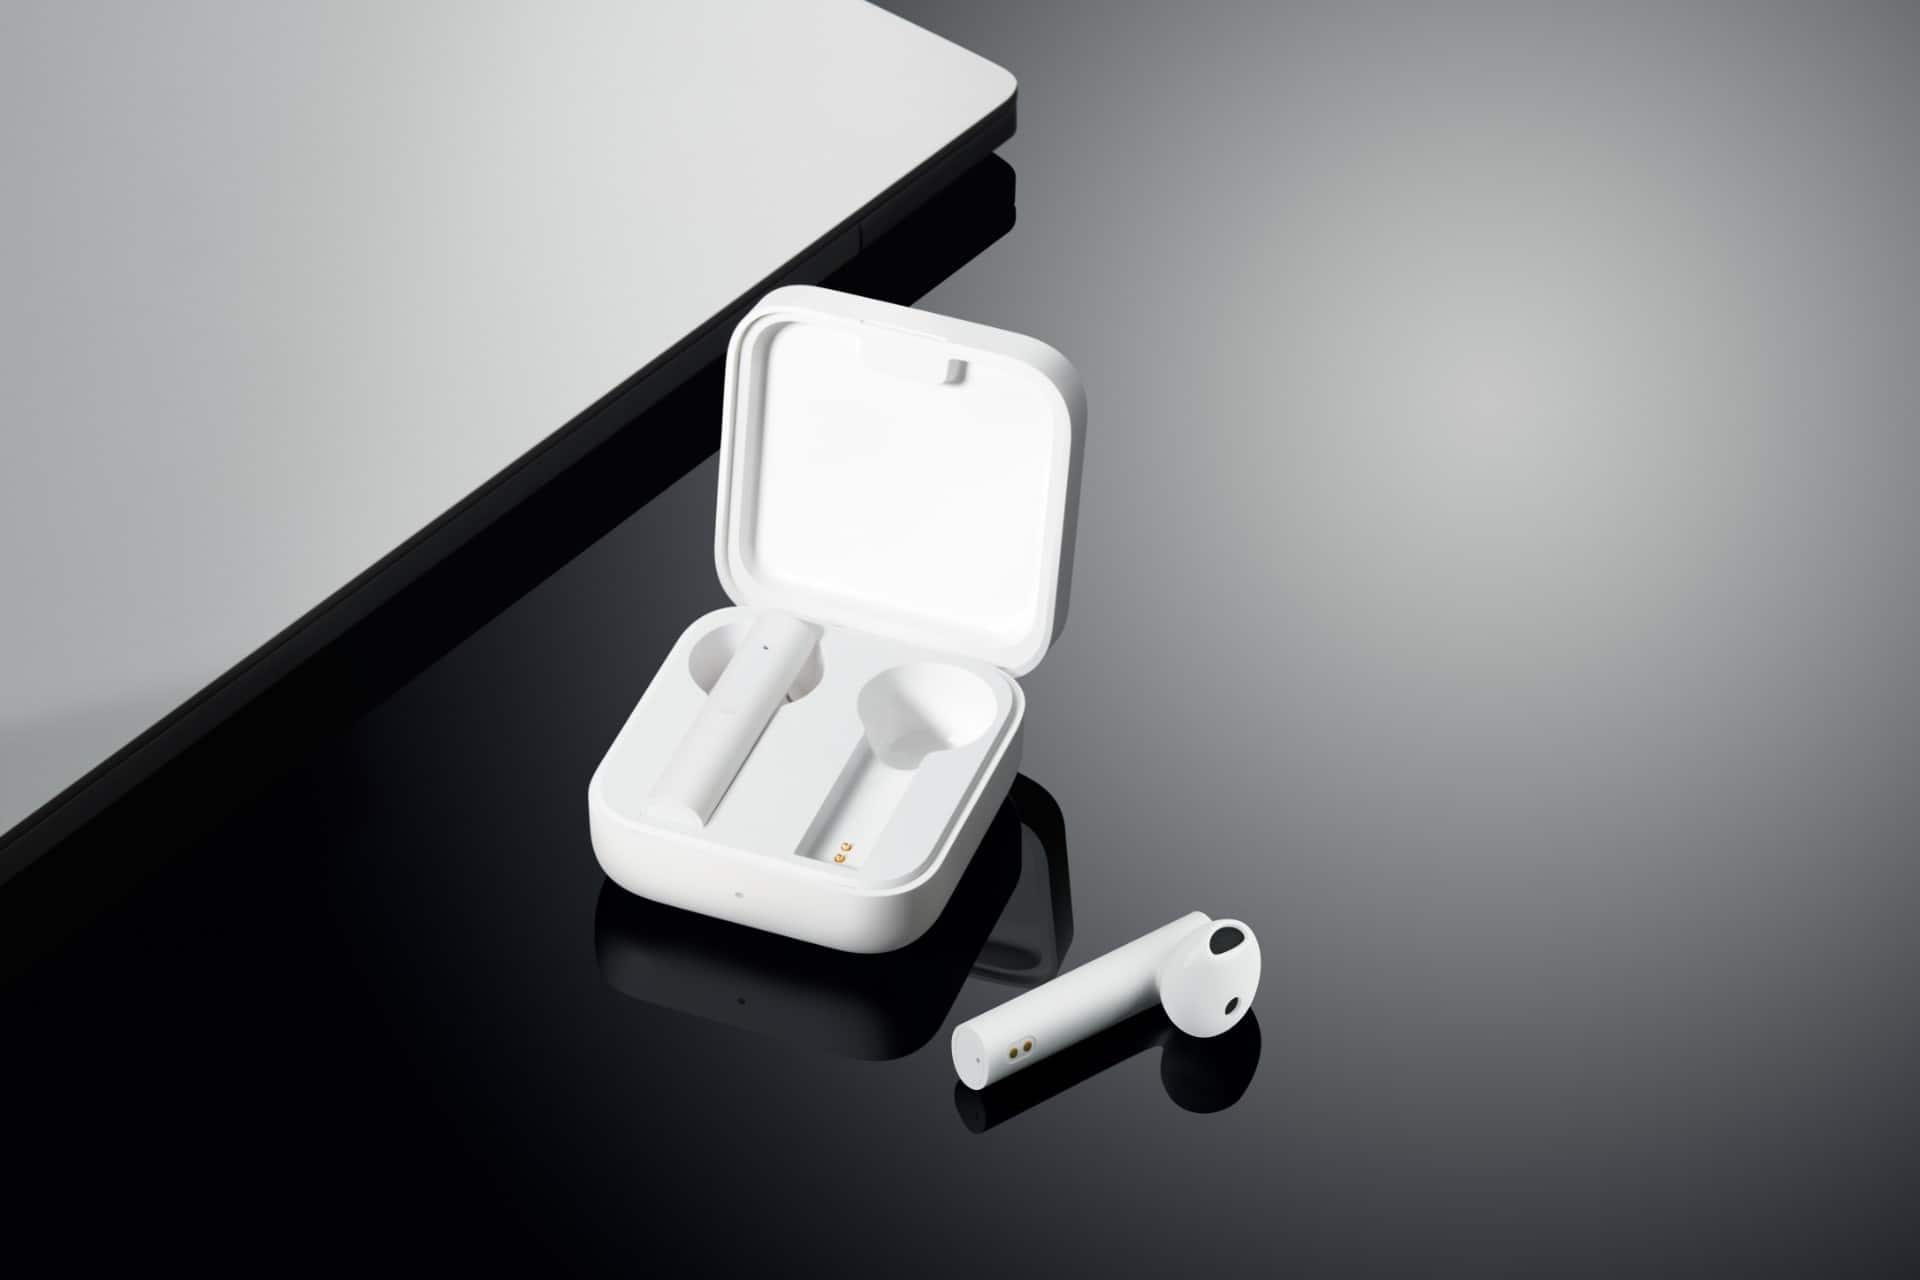 Xiaomi Mi True Wireless Earphones 2 Basic image 13